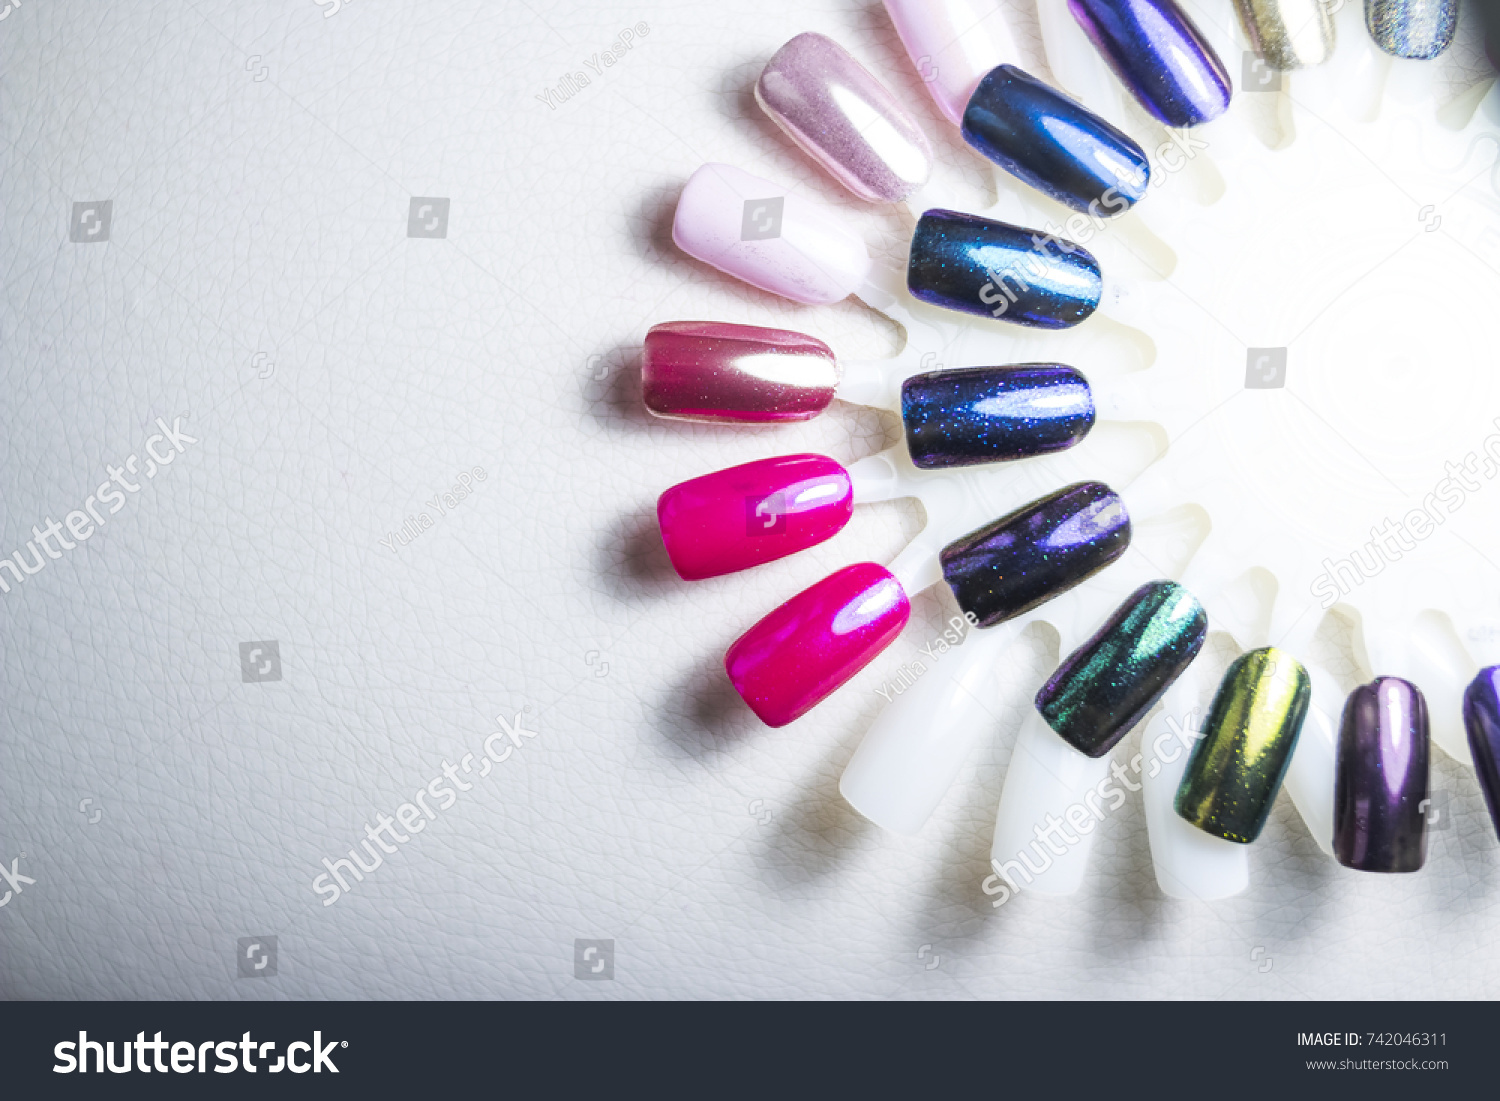 Color Polish Manicure Design Nails Testers Stock Photo (Safe to Use ...